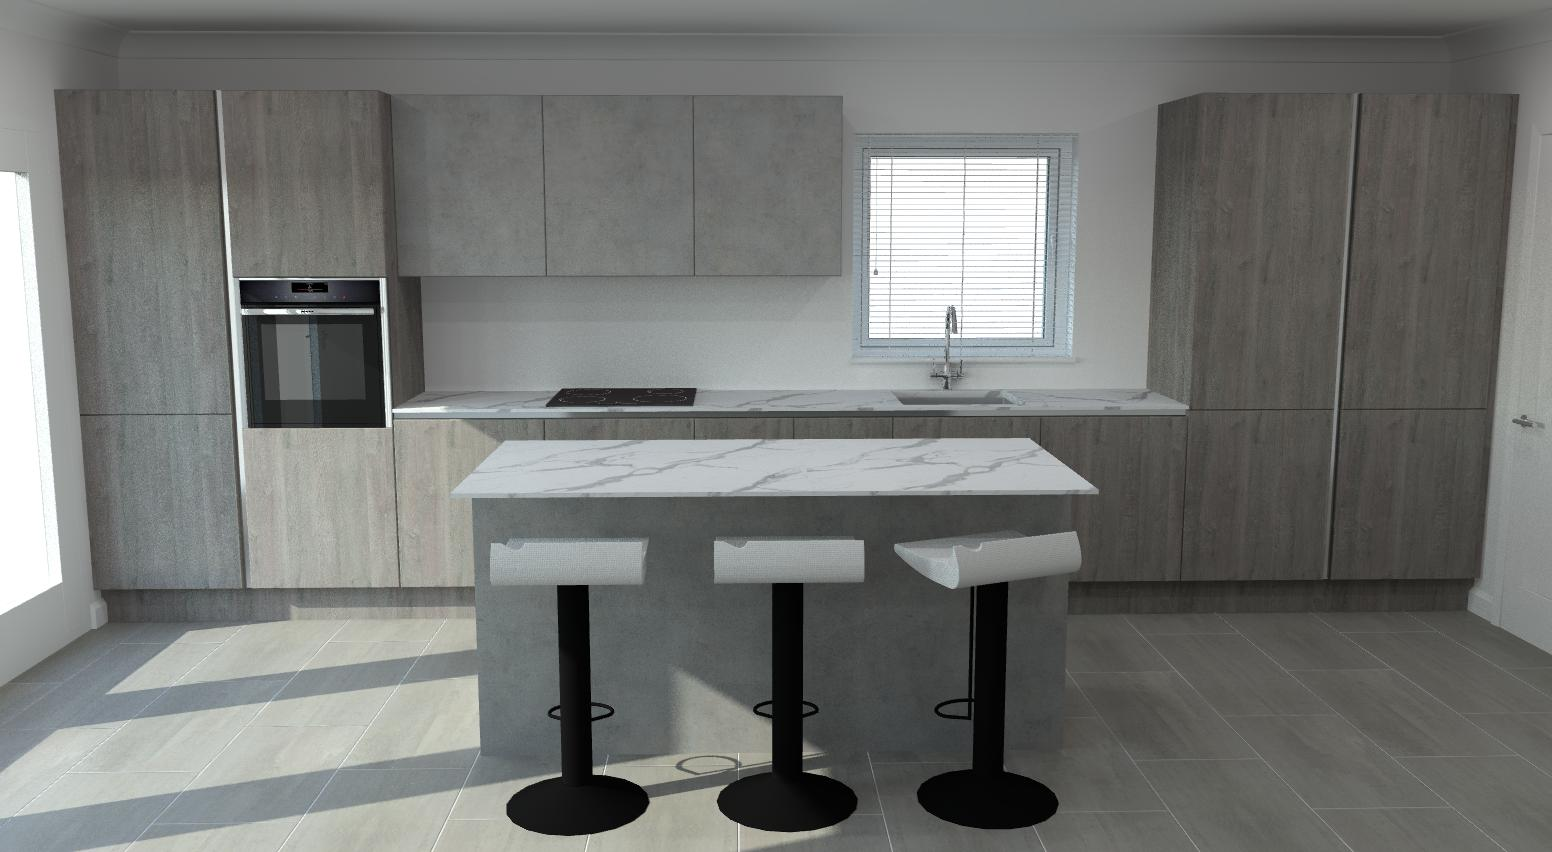 Grey oak and concrete units with compact laminate white marble worktops